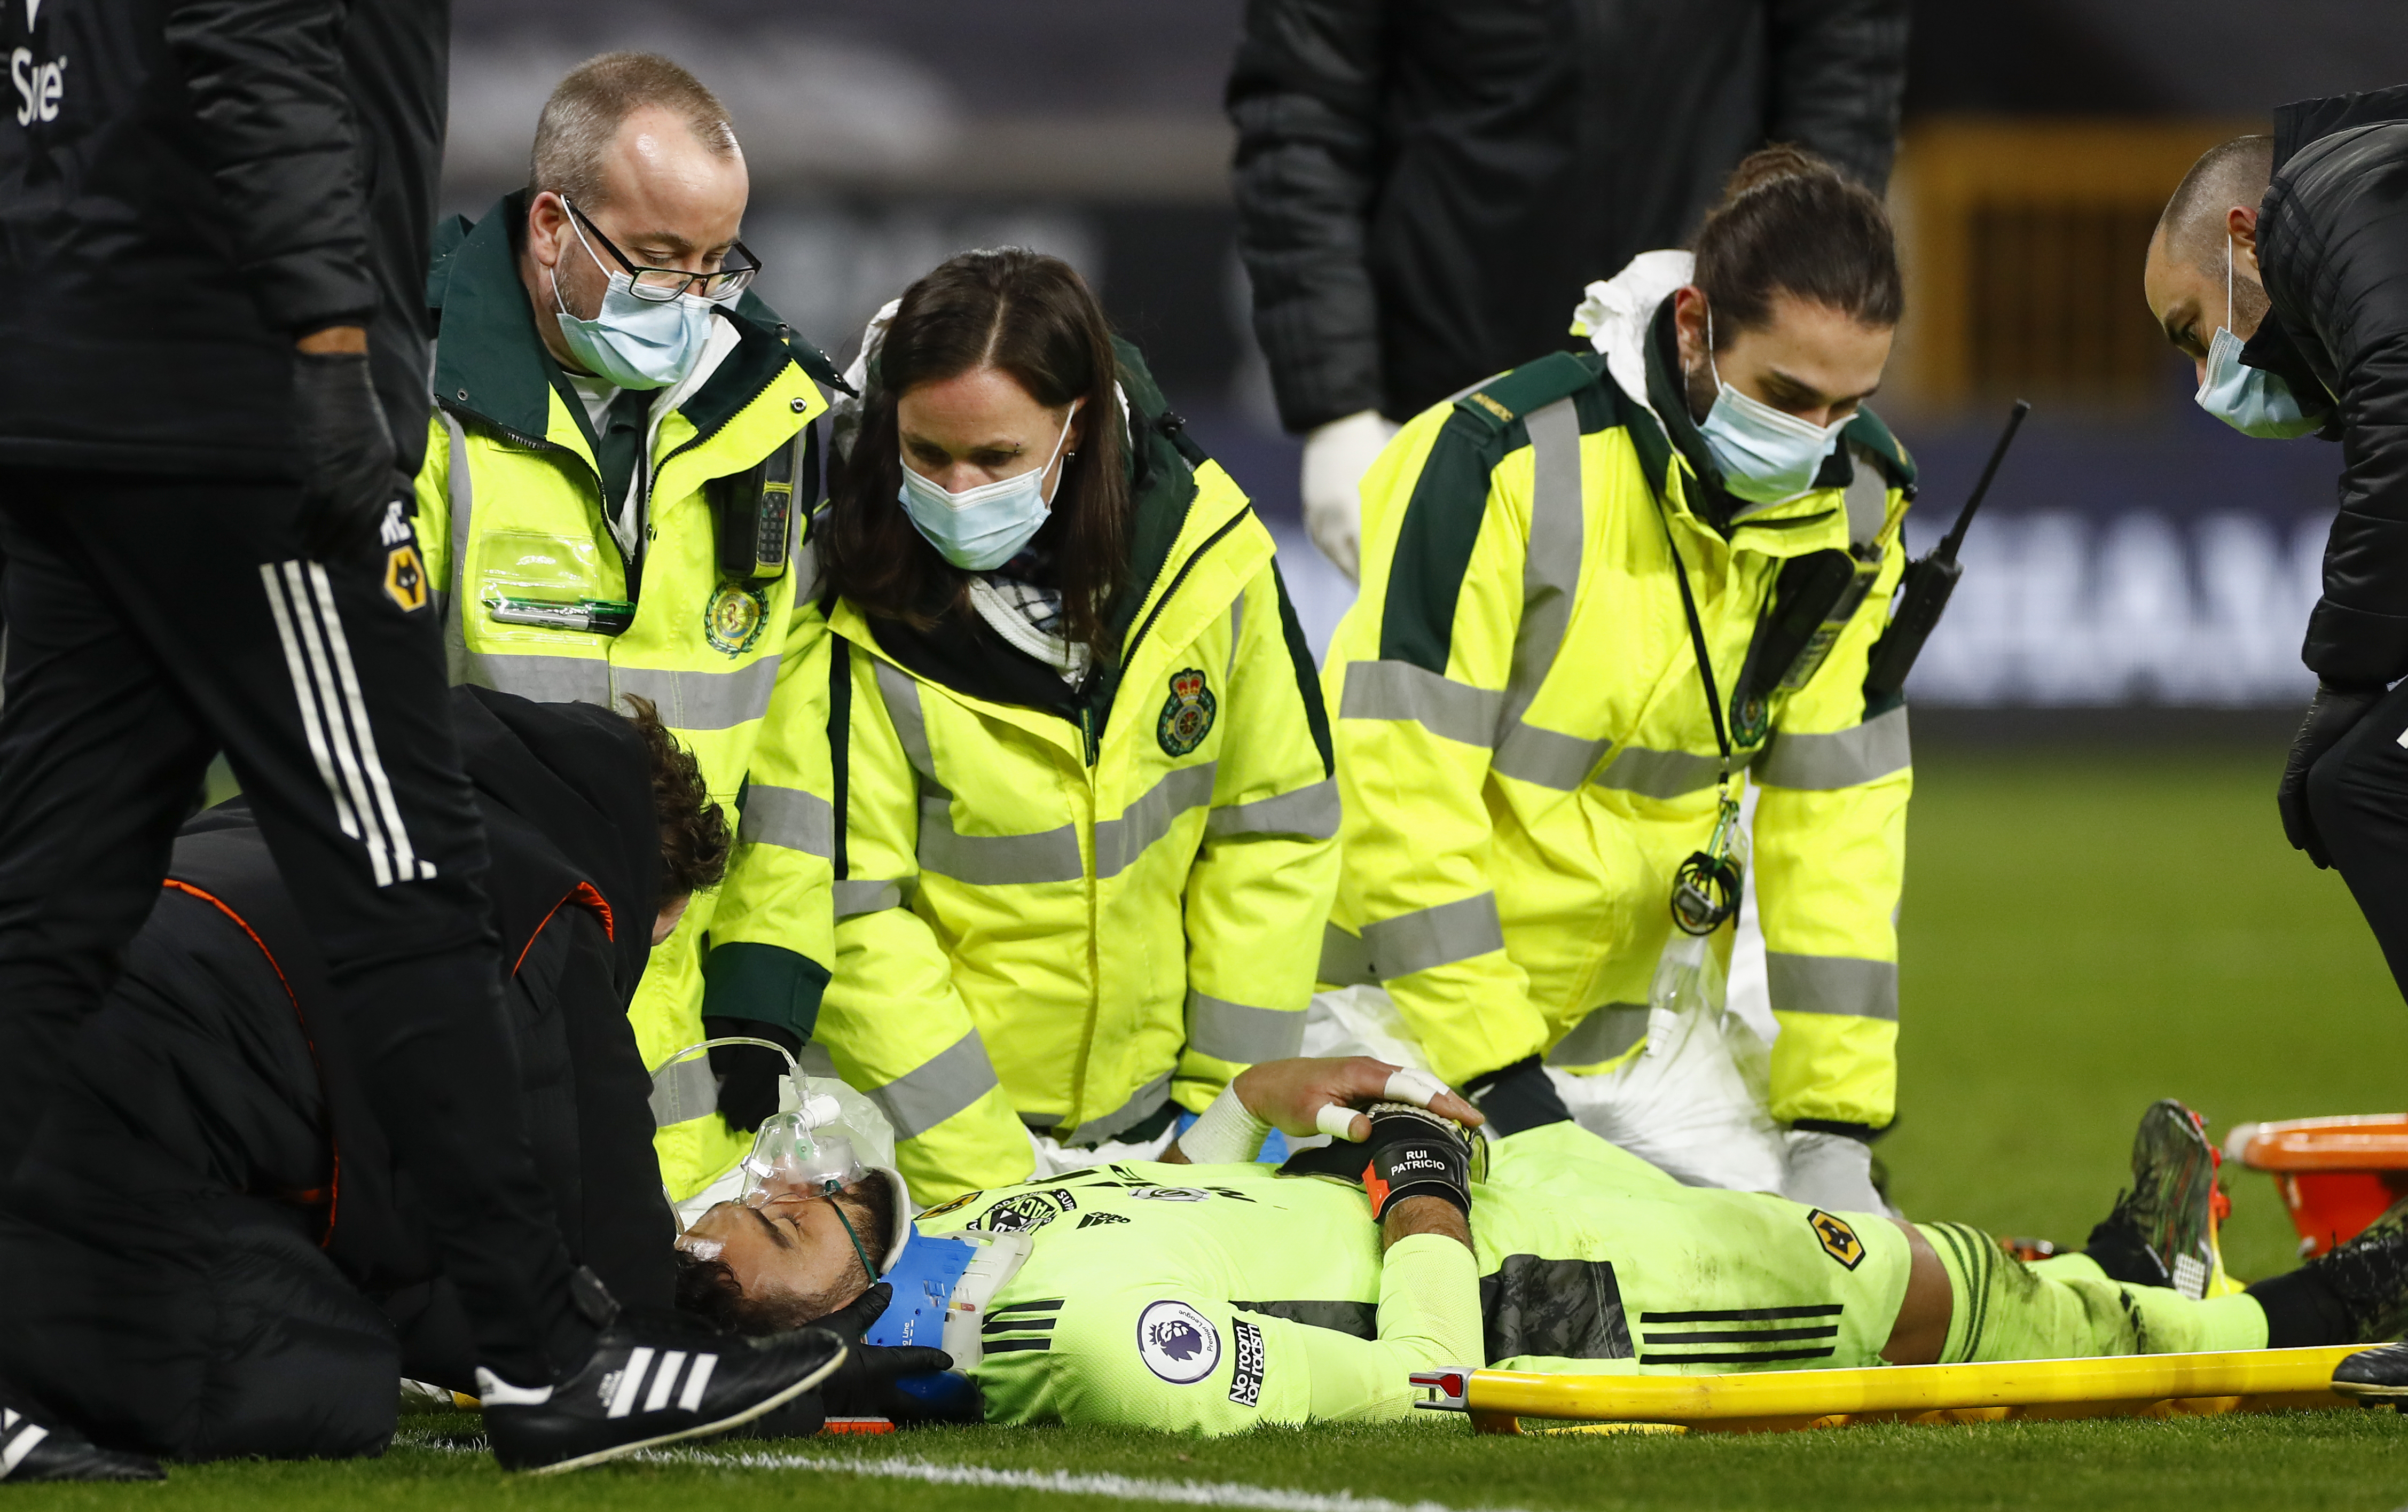 <p>Medical staff attend to Wolverhampton Wanderers' goalkeeper Rui Patricio during the English Premier League soccer match between Wolverhampton Wanderers and Liverpool at Molineux Stadium in Wolverhampton, England, Monday, March. 15, 2021. (AP Photo/Jason Cairnduff,Pool)</p>